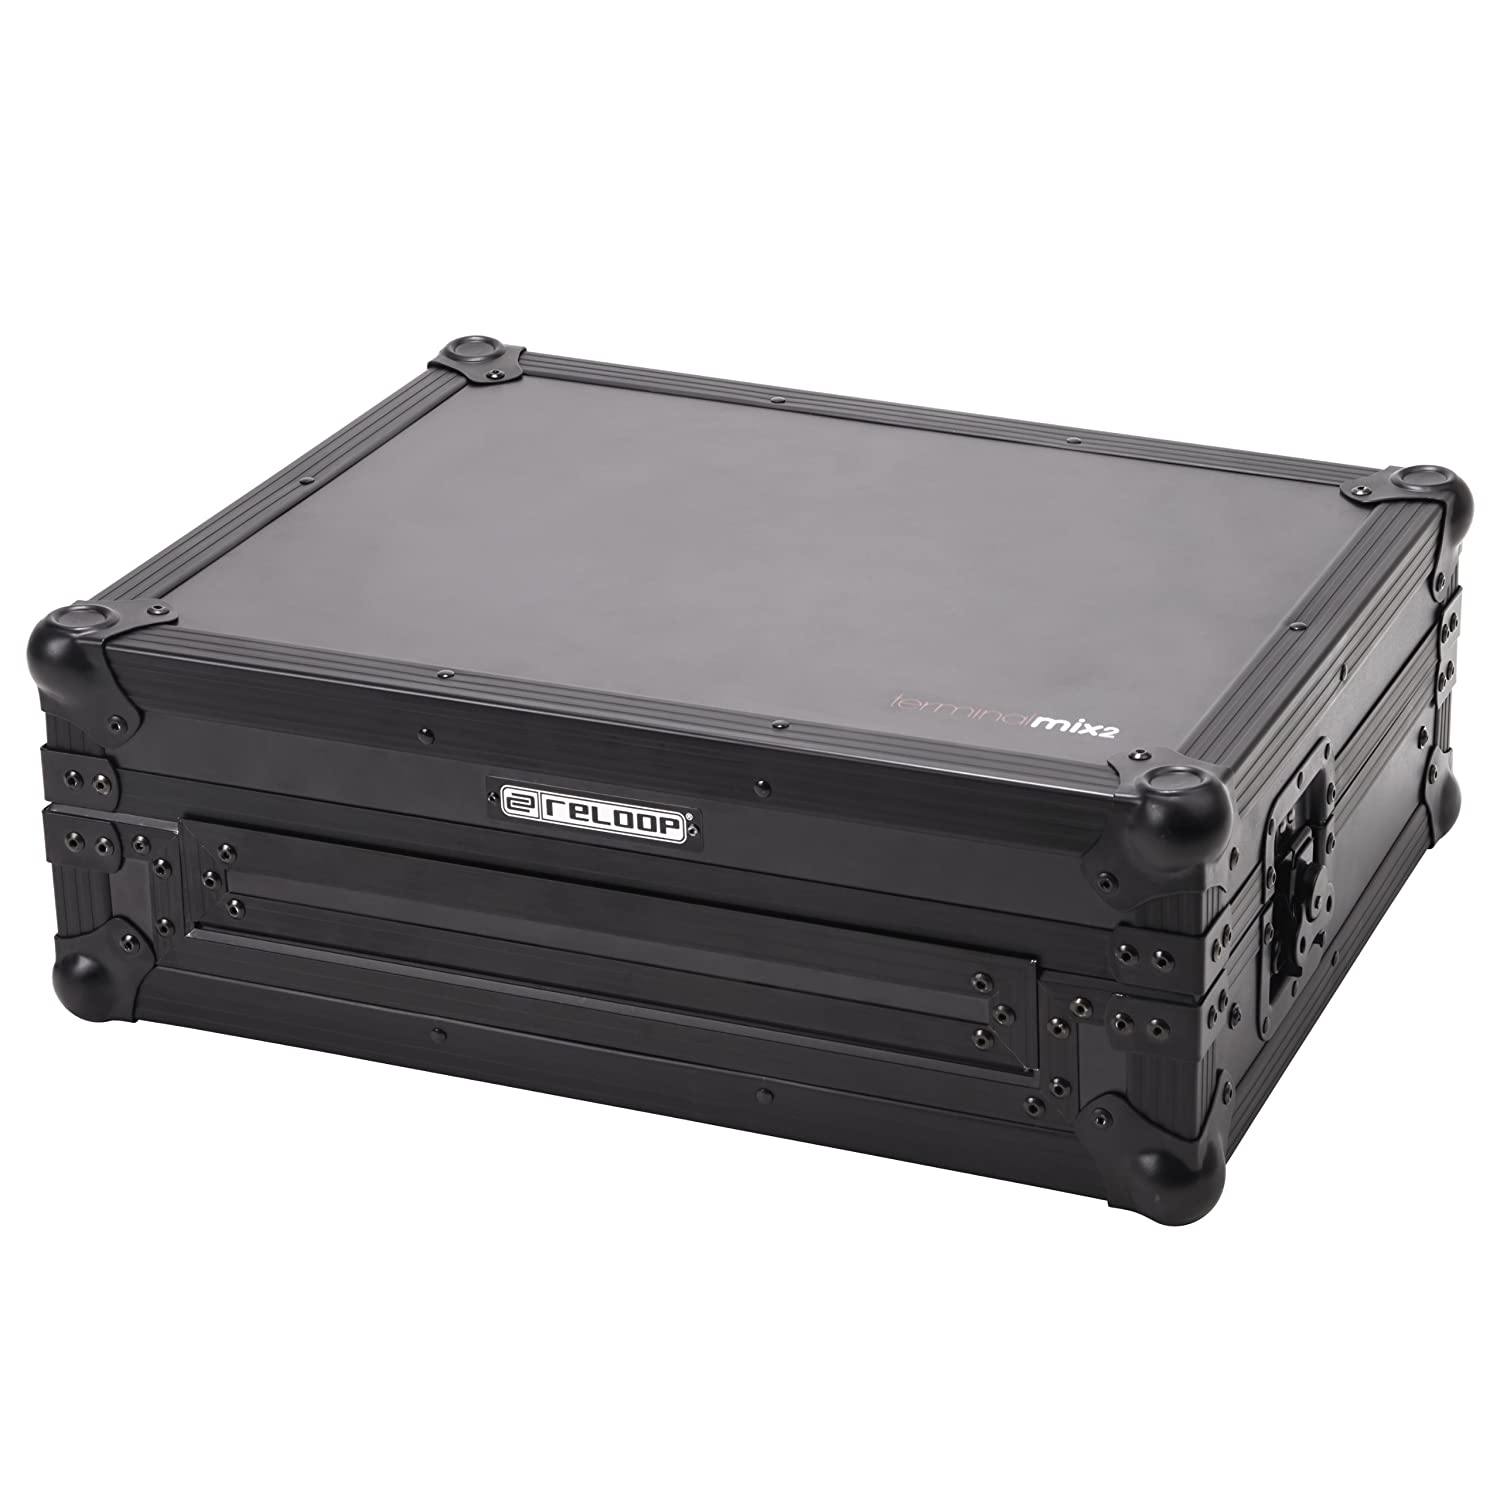 Reloop Professional DJ Controller Travel Case for Terminal Mix 2 American Music and Sound AMS-TM2-CASE